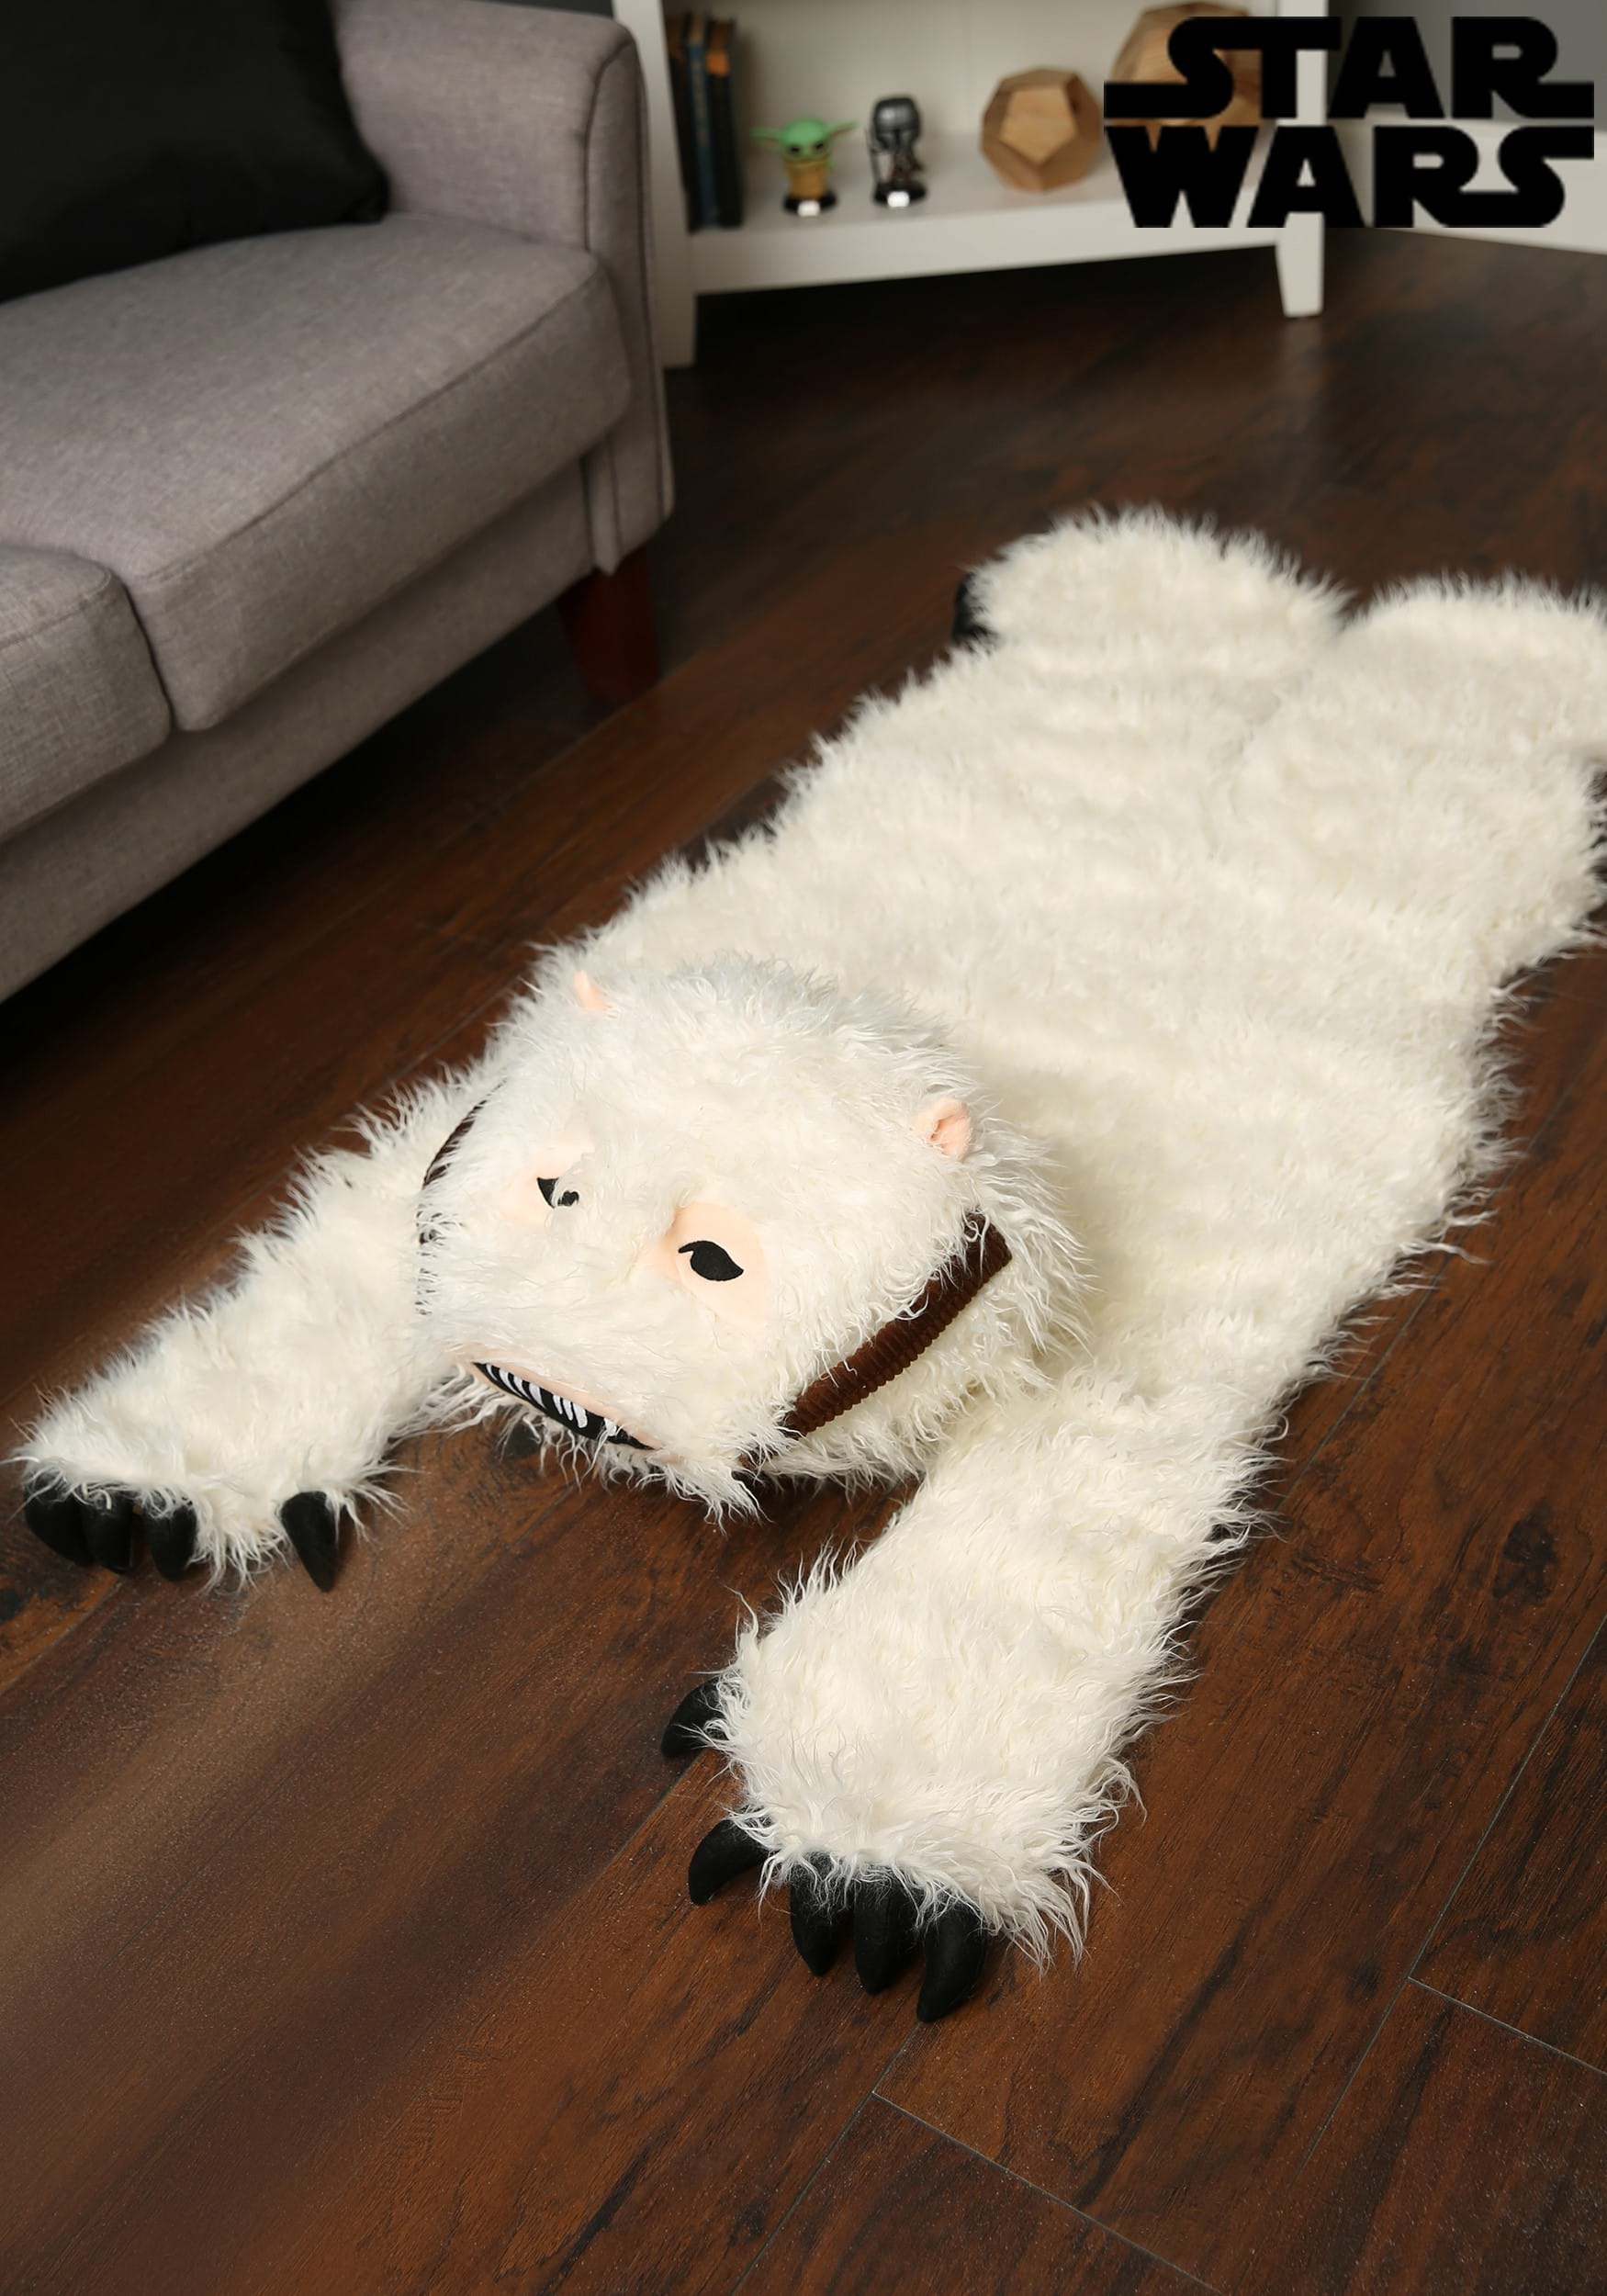 Wampa rug in perfect lighting.